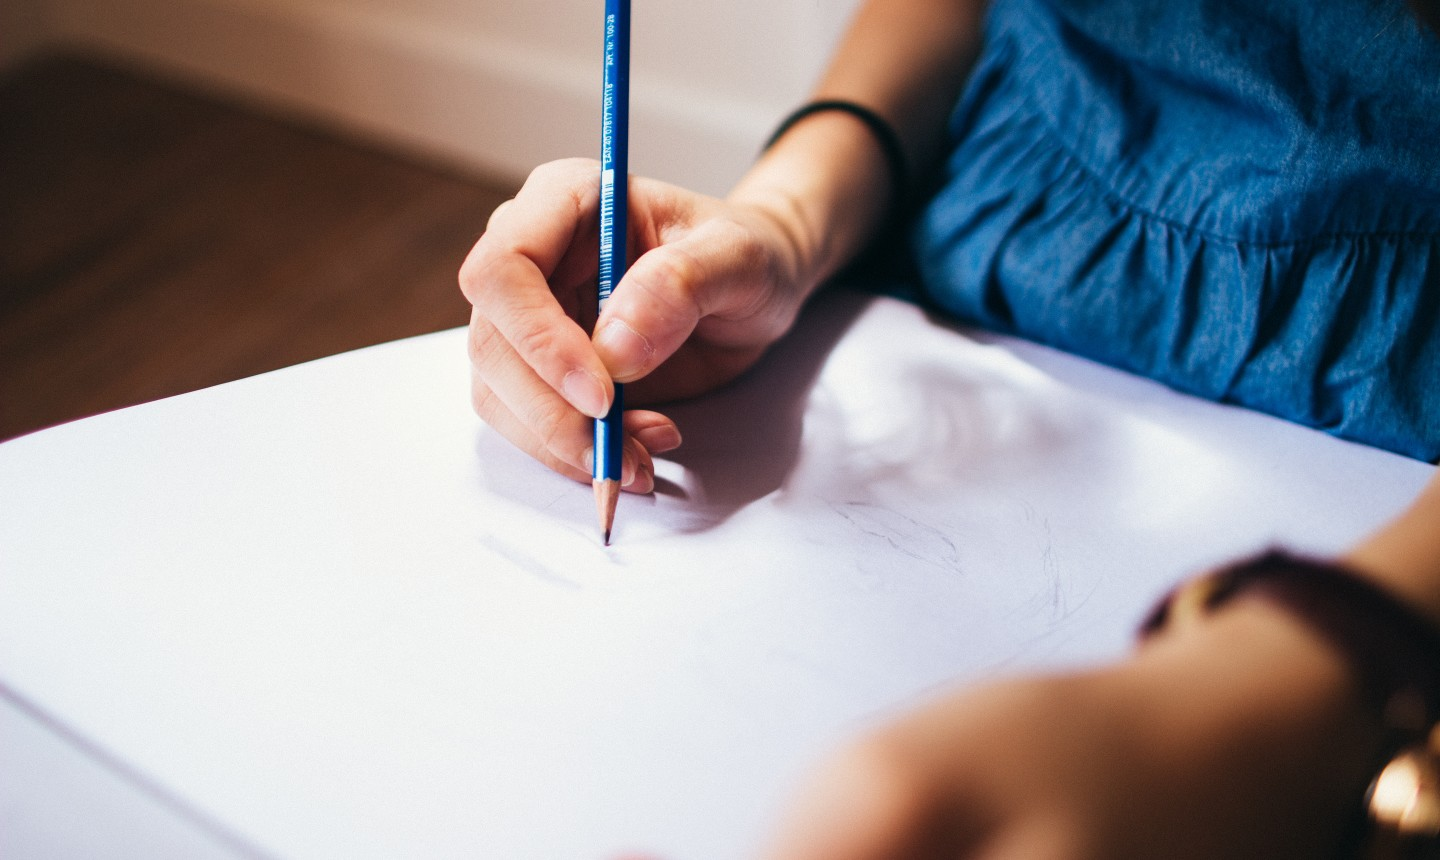 Picture of someone drawing